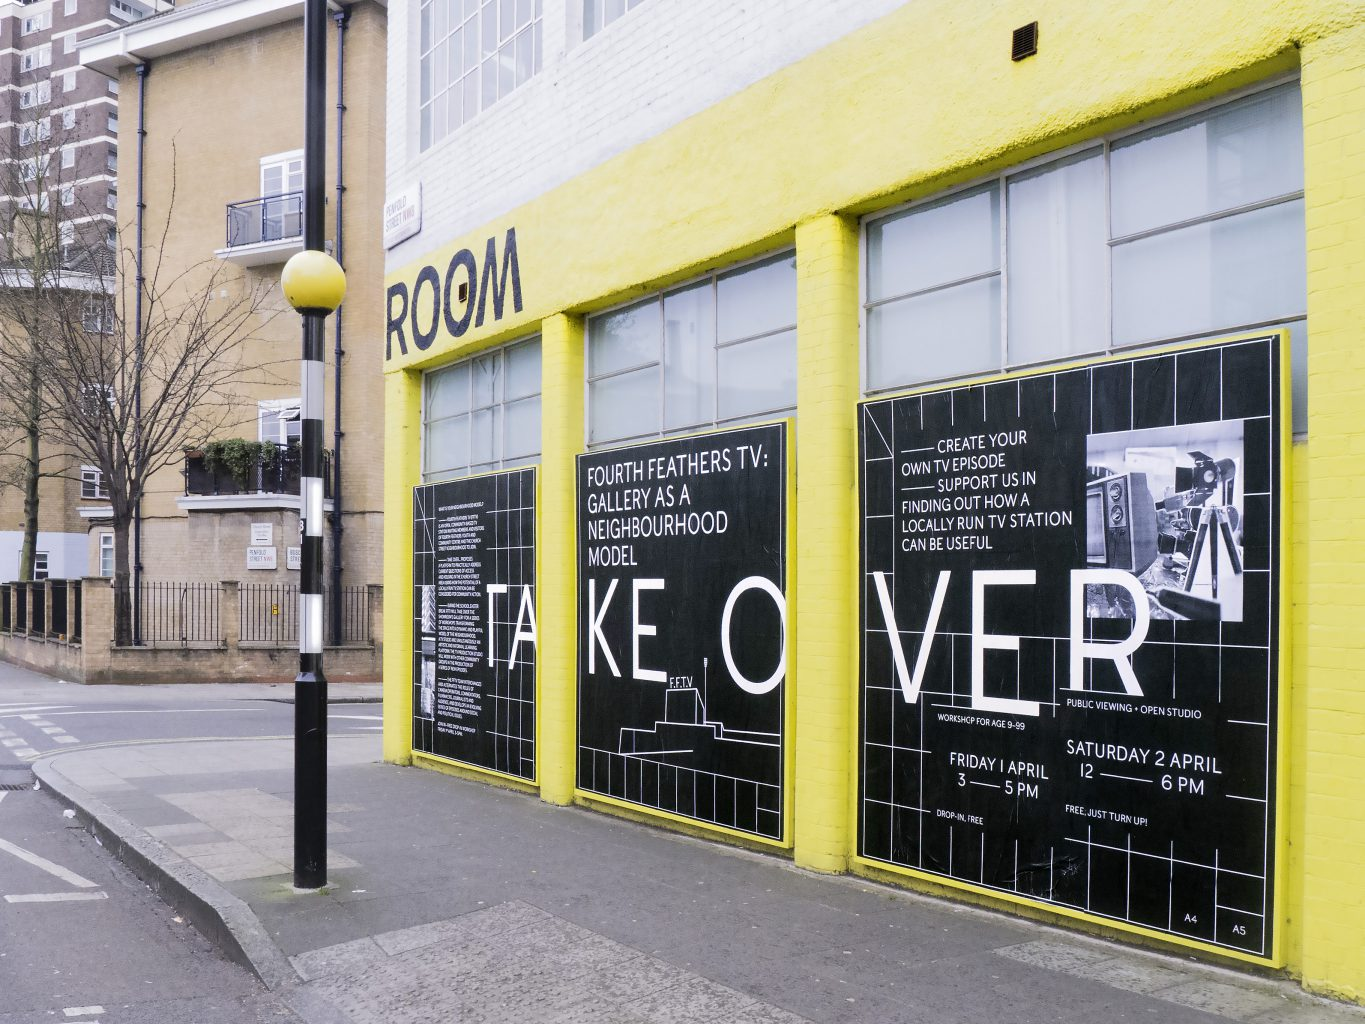 Exhibition design of Take Over: Gallery as a neighbourhood model, exhibition and community workshop at The Showroom Gallery, Paddington, London, designed by In the shade of a tree studio, founded by Sophie Demay and Maël Fournier Comte.